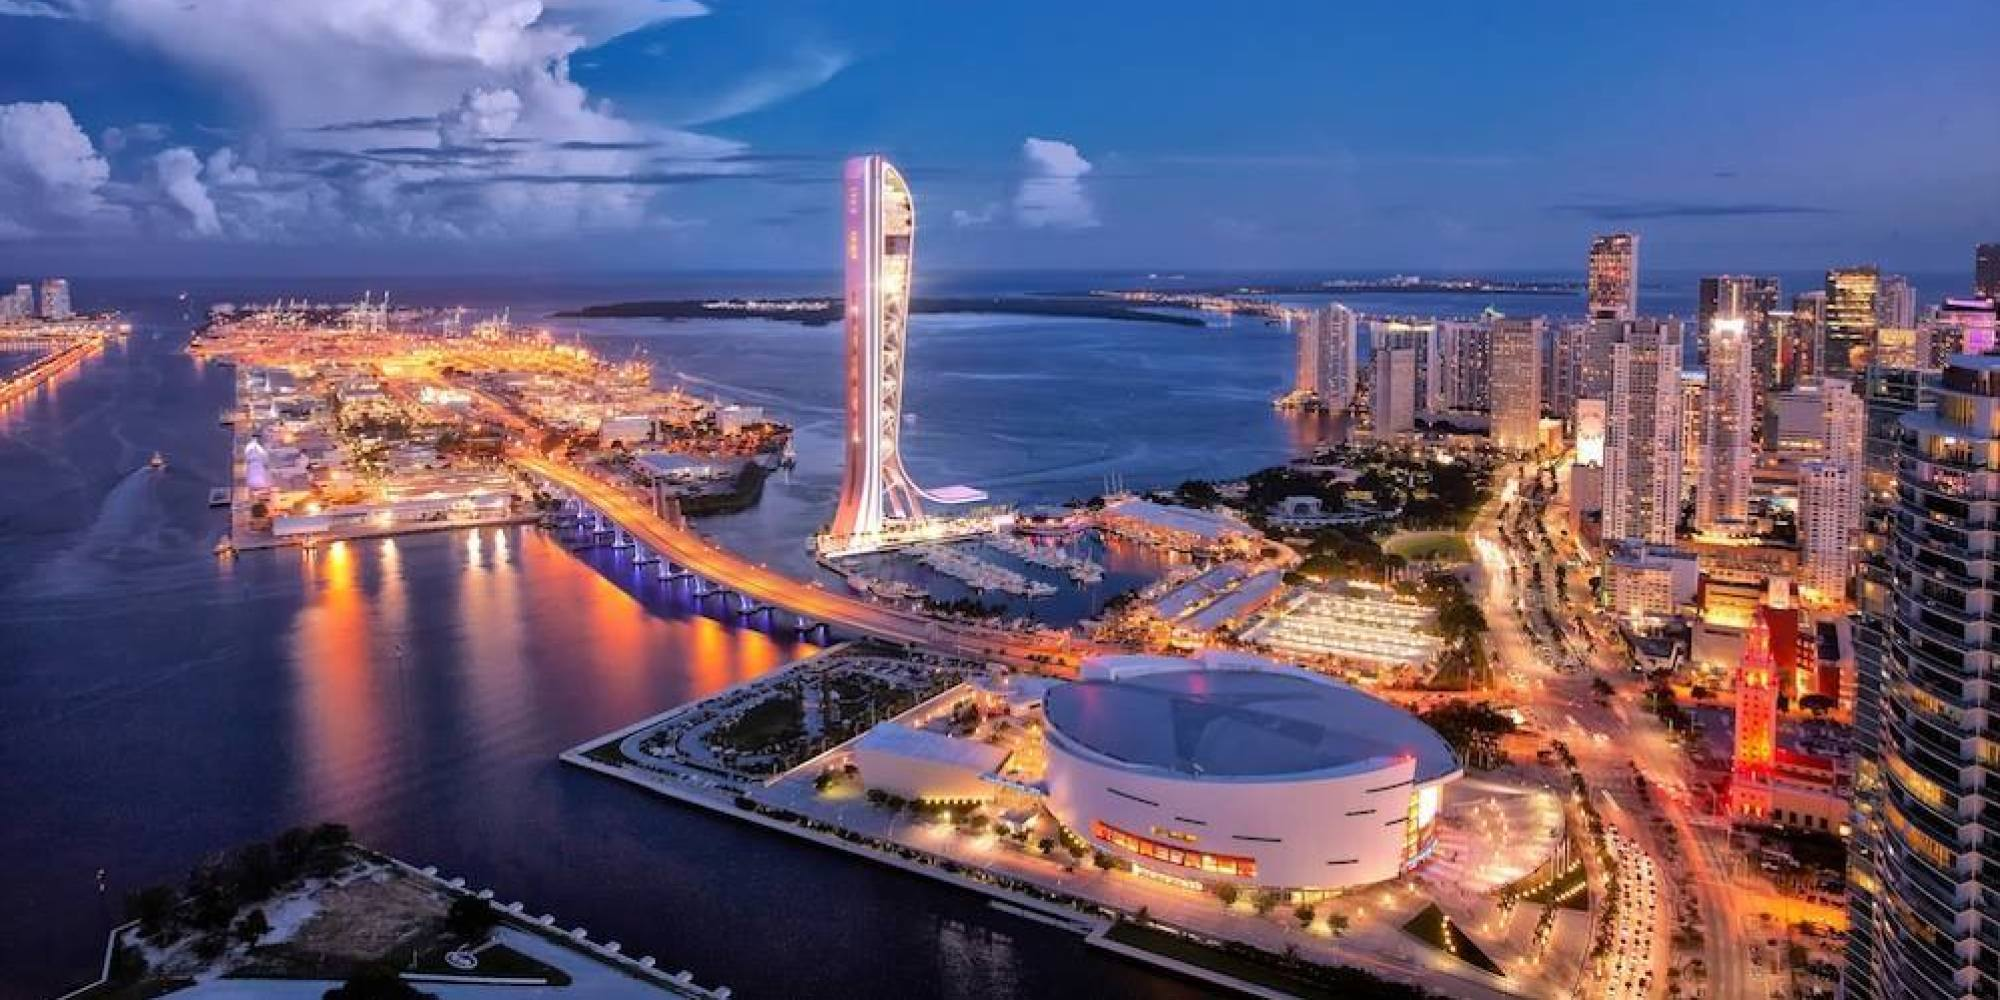 SkyRise Miami' Observation Tower May Be The Craziest Miami Thing Yet ...